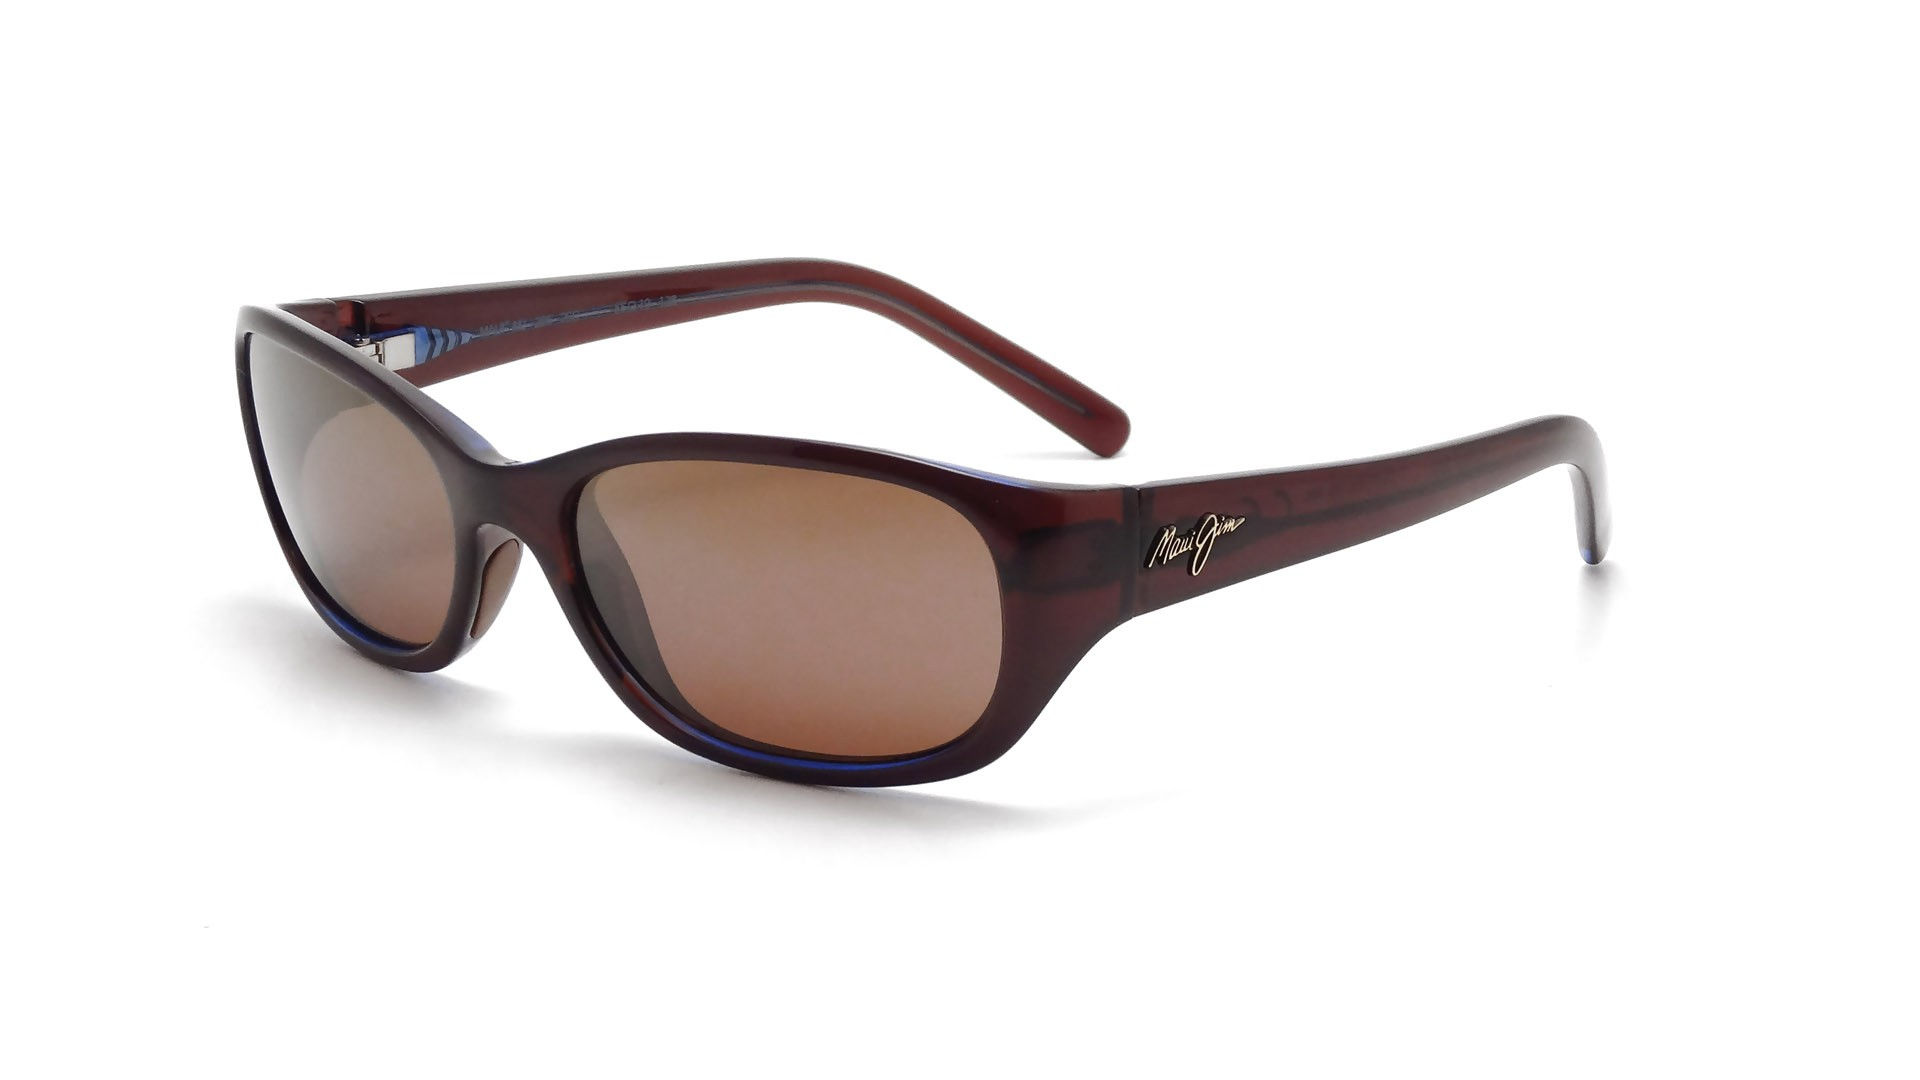 Maui Jim Lighthouse Sunglasses  jim kuiaha bay brown h286 26c 55 19 polarized visiofactory